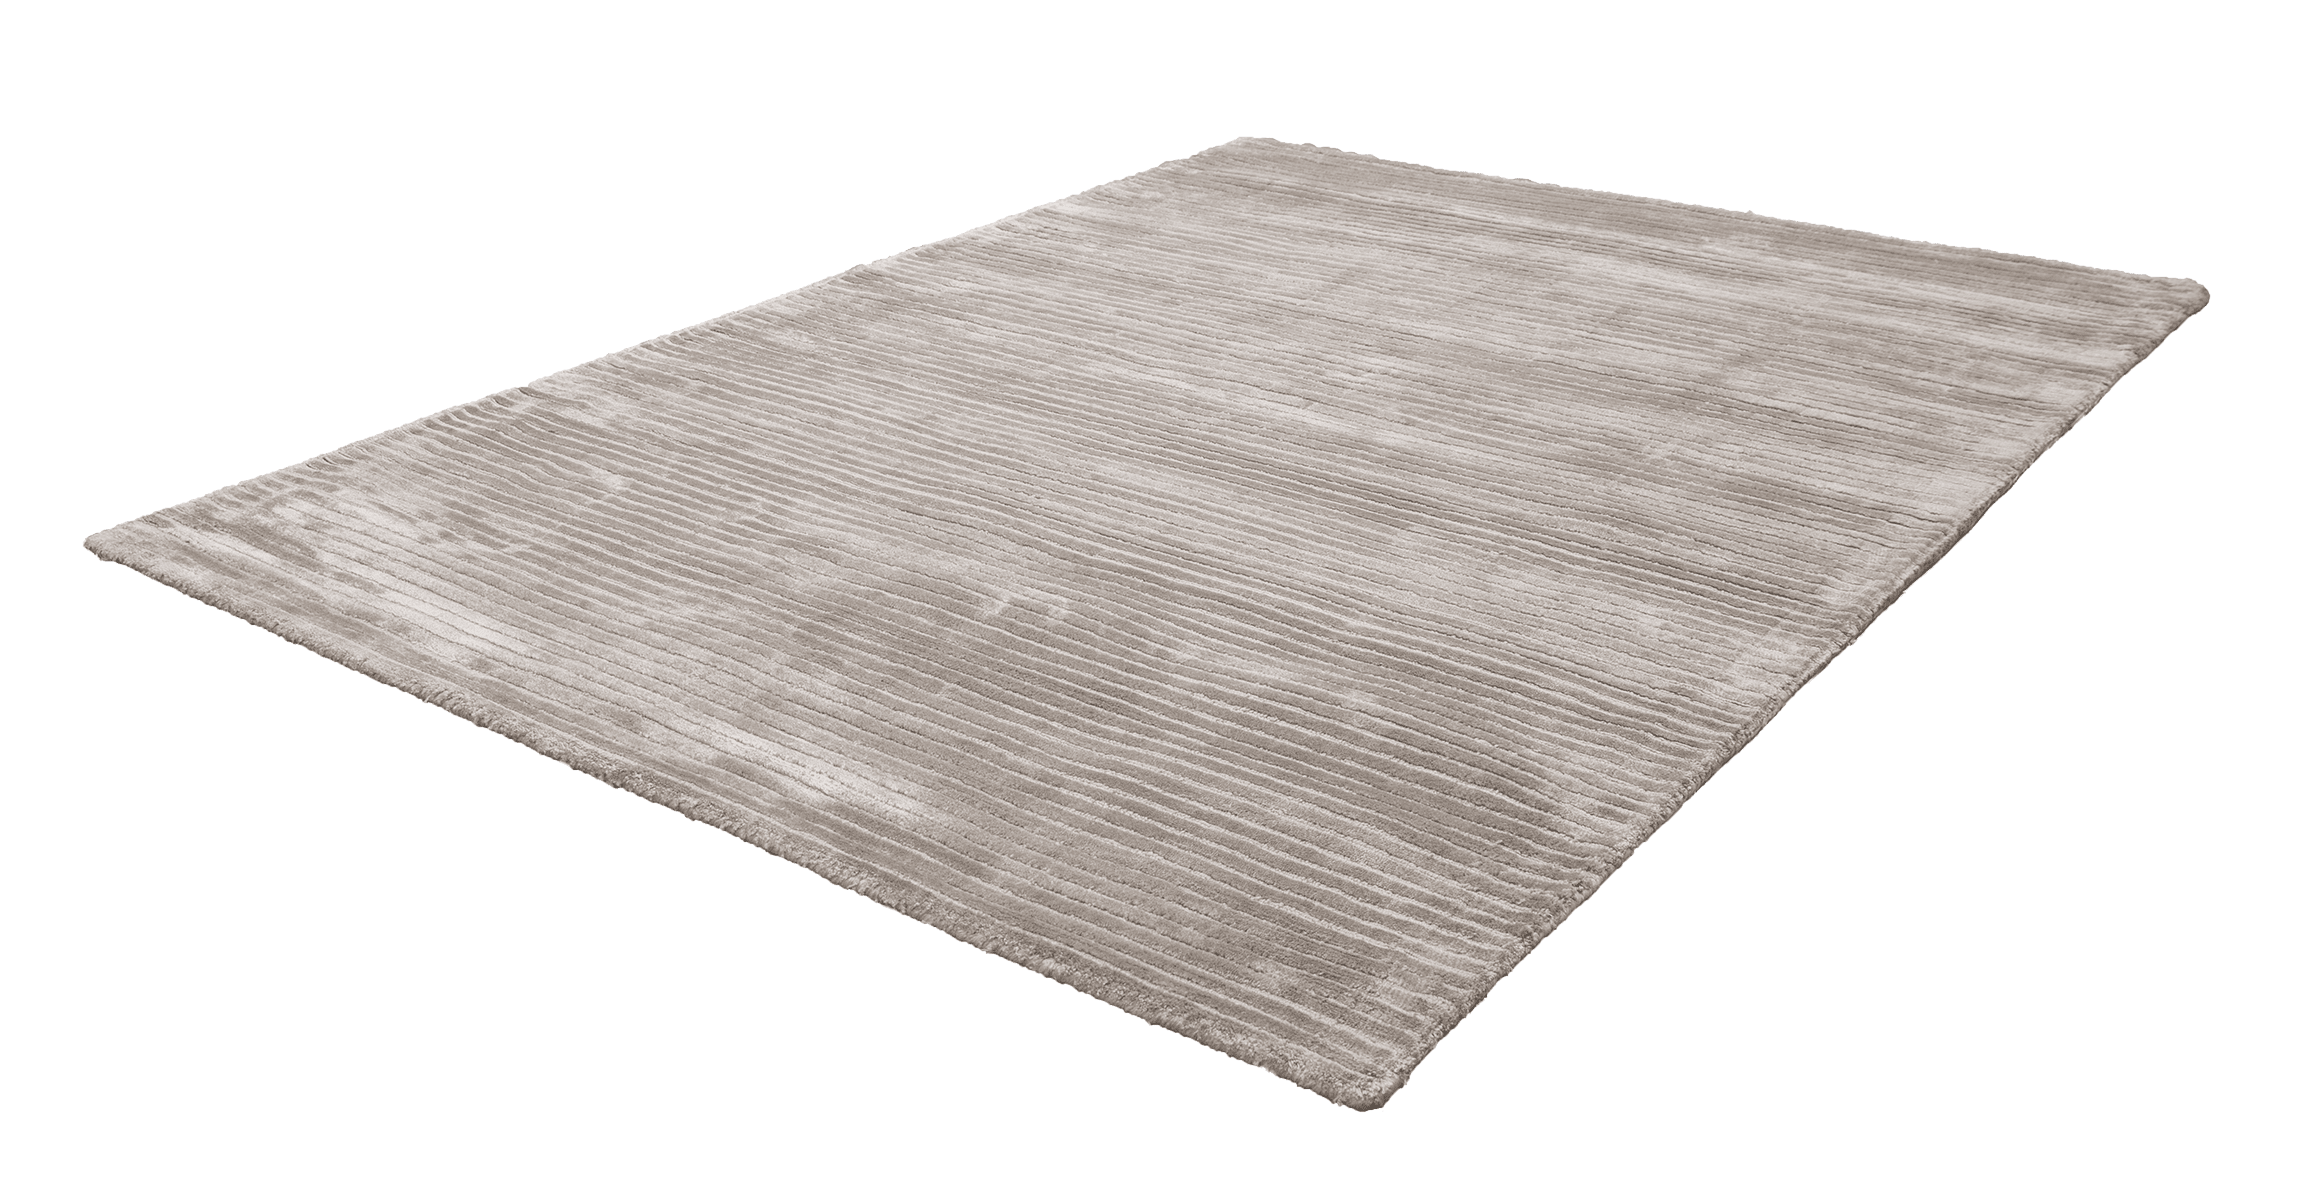 Vloerkleed Viscose Handgeweven Obsession Taupe 520